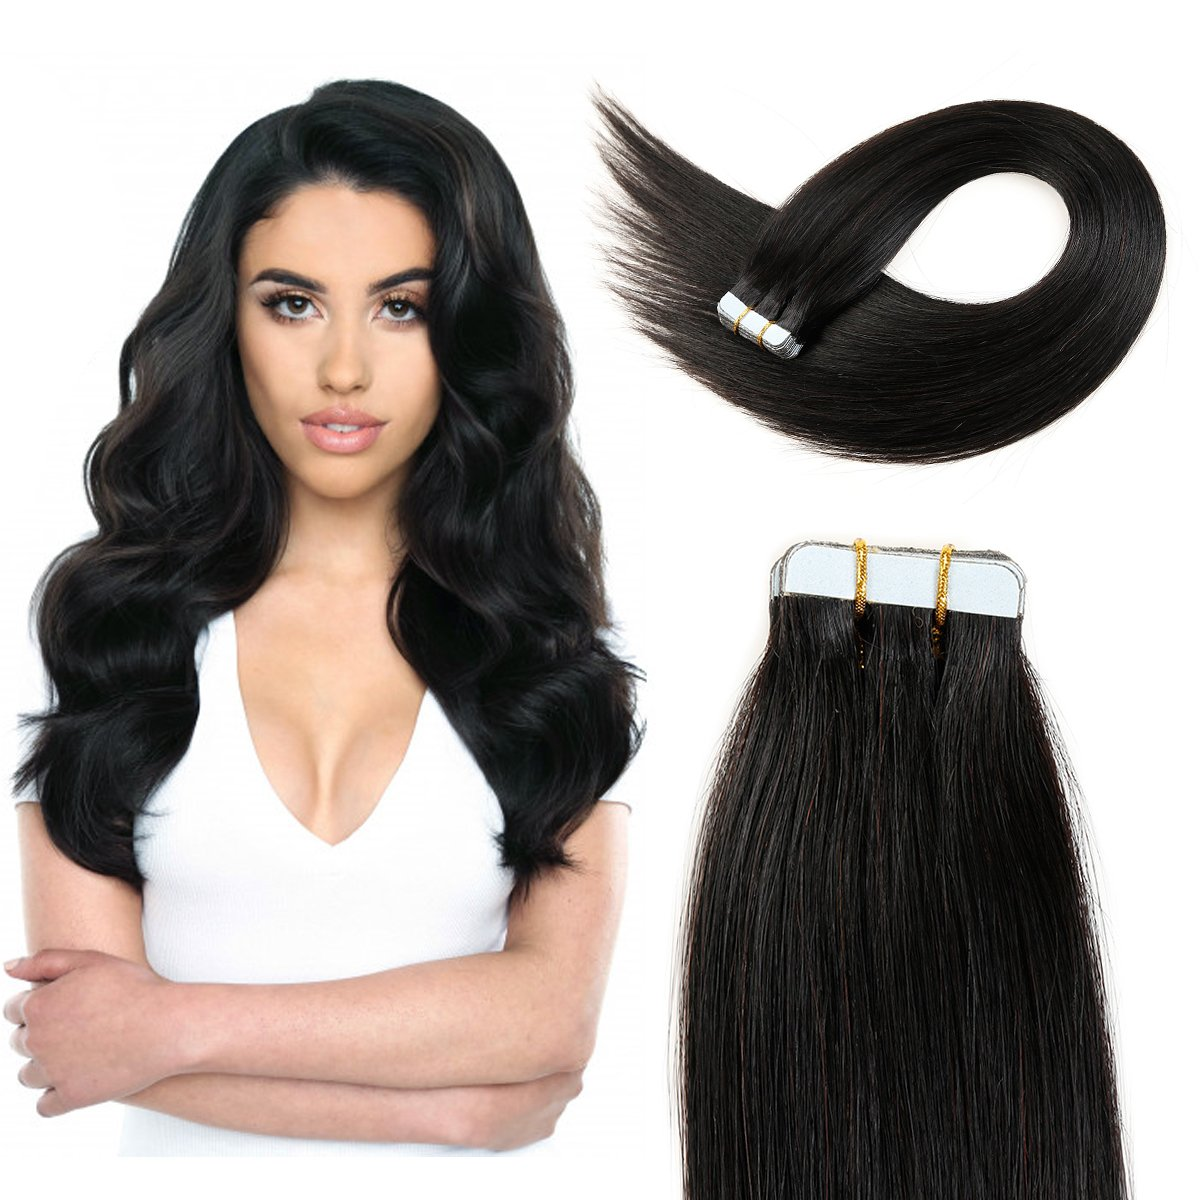 18inch Nntural Black Tape In Hair Extensions Human Hair Tape In Extensions Natural Black Remy Hair Tape In Extensions 50g 1B#